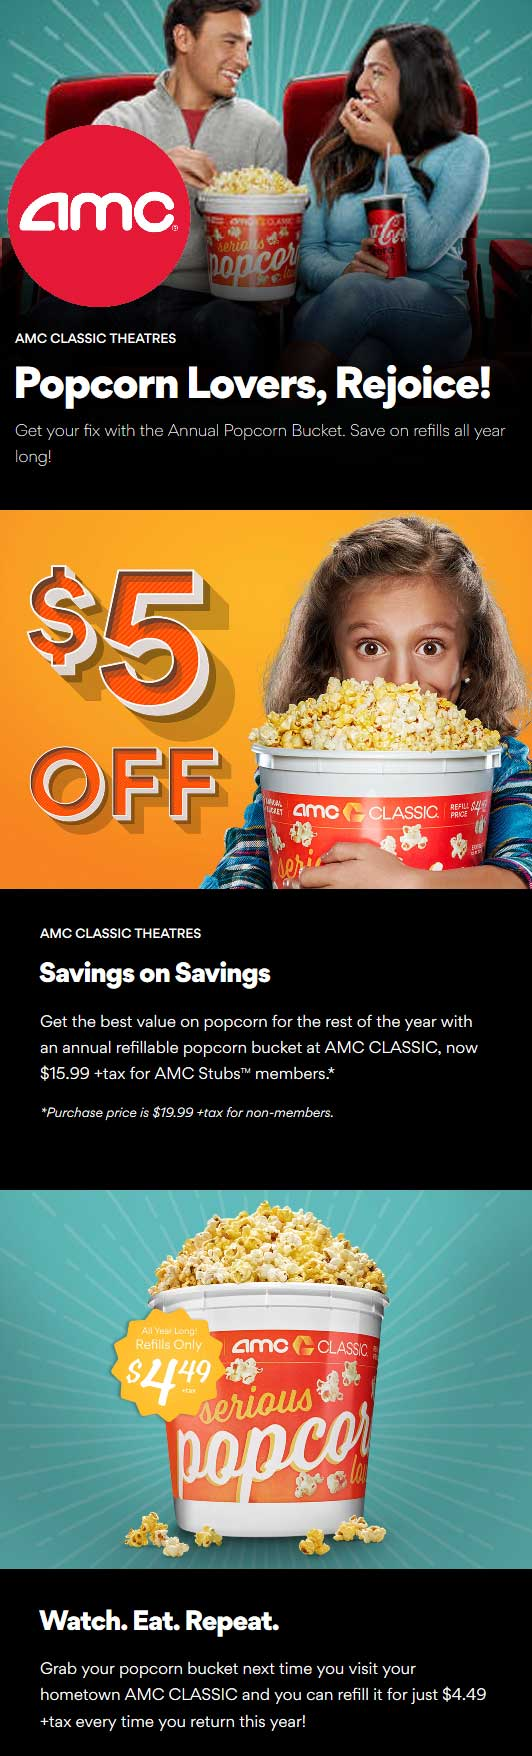 AMC Theaters Coupon June 2019 $16 popcorn has $4.50 refills all year at AMC Theaters